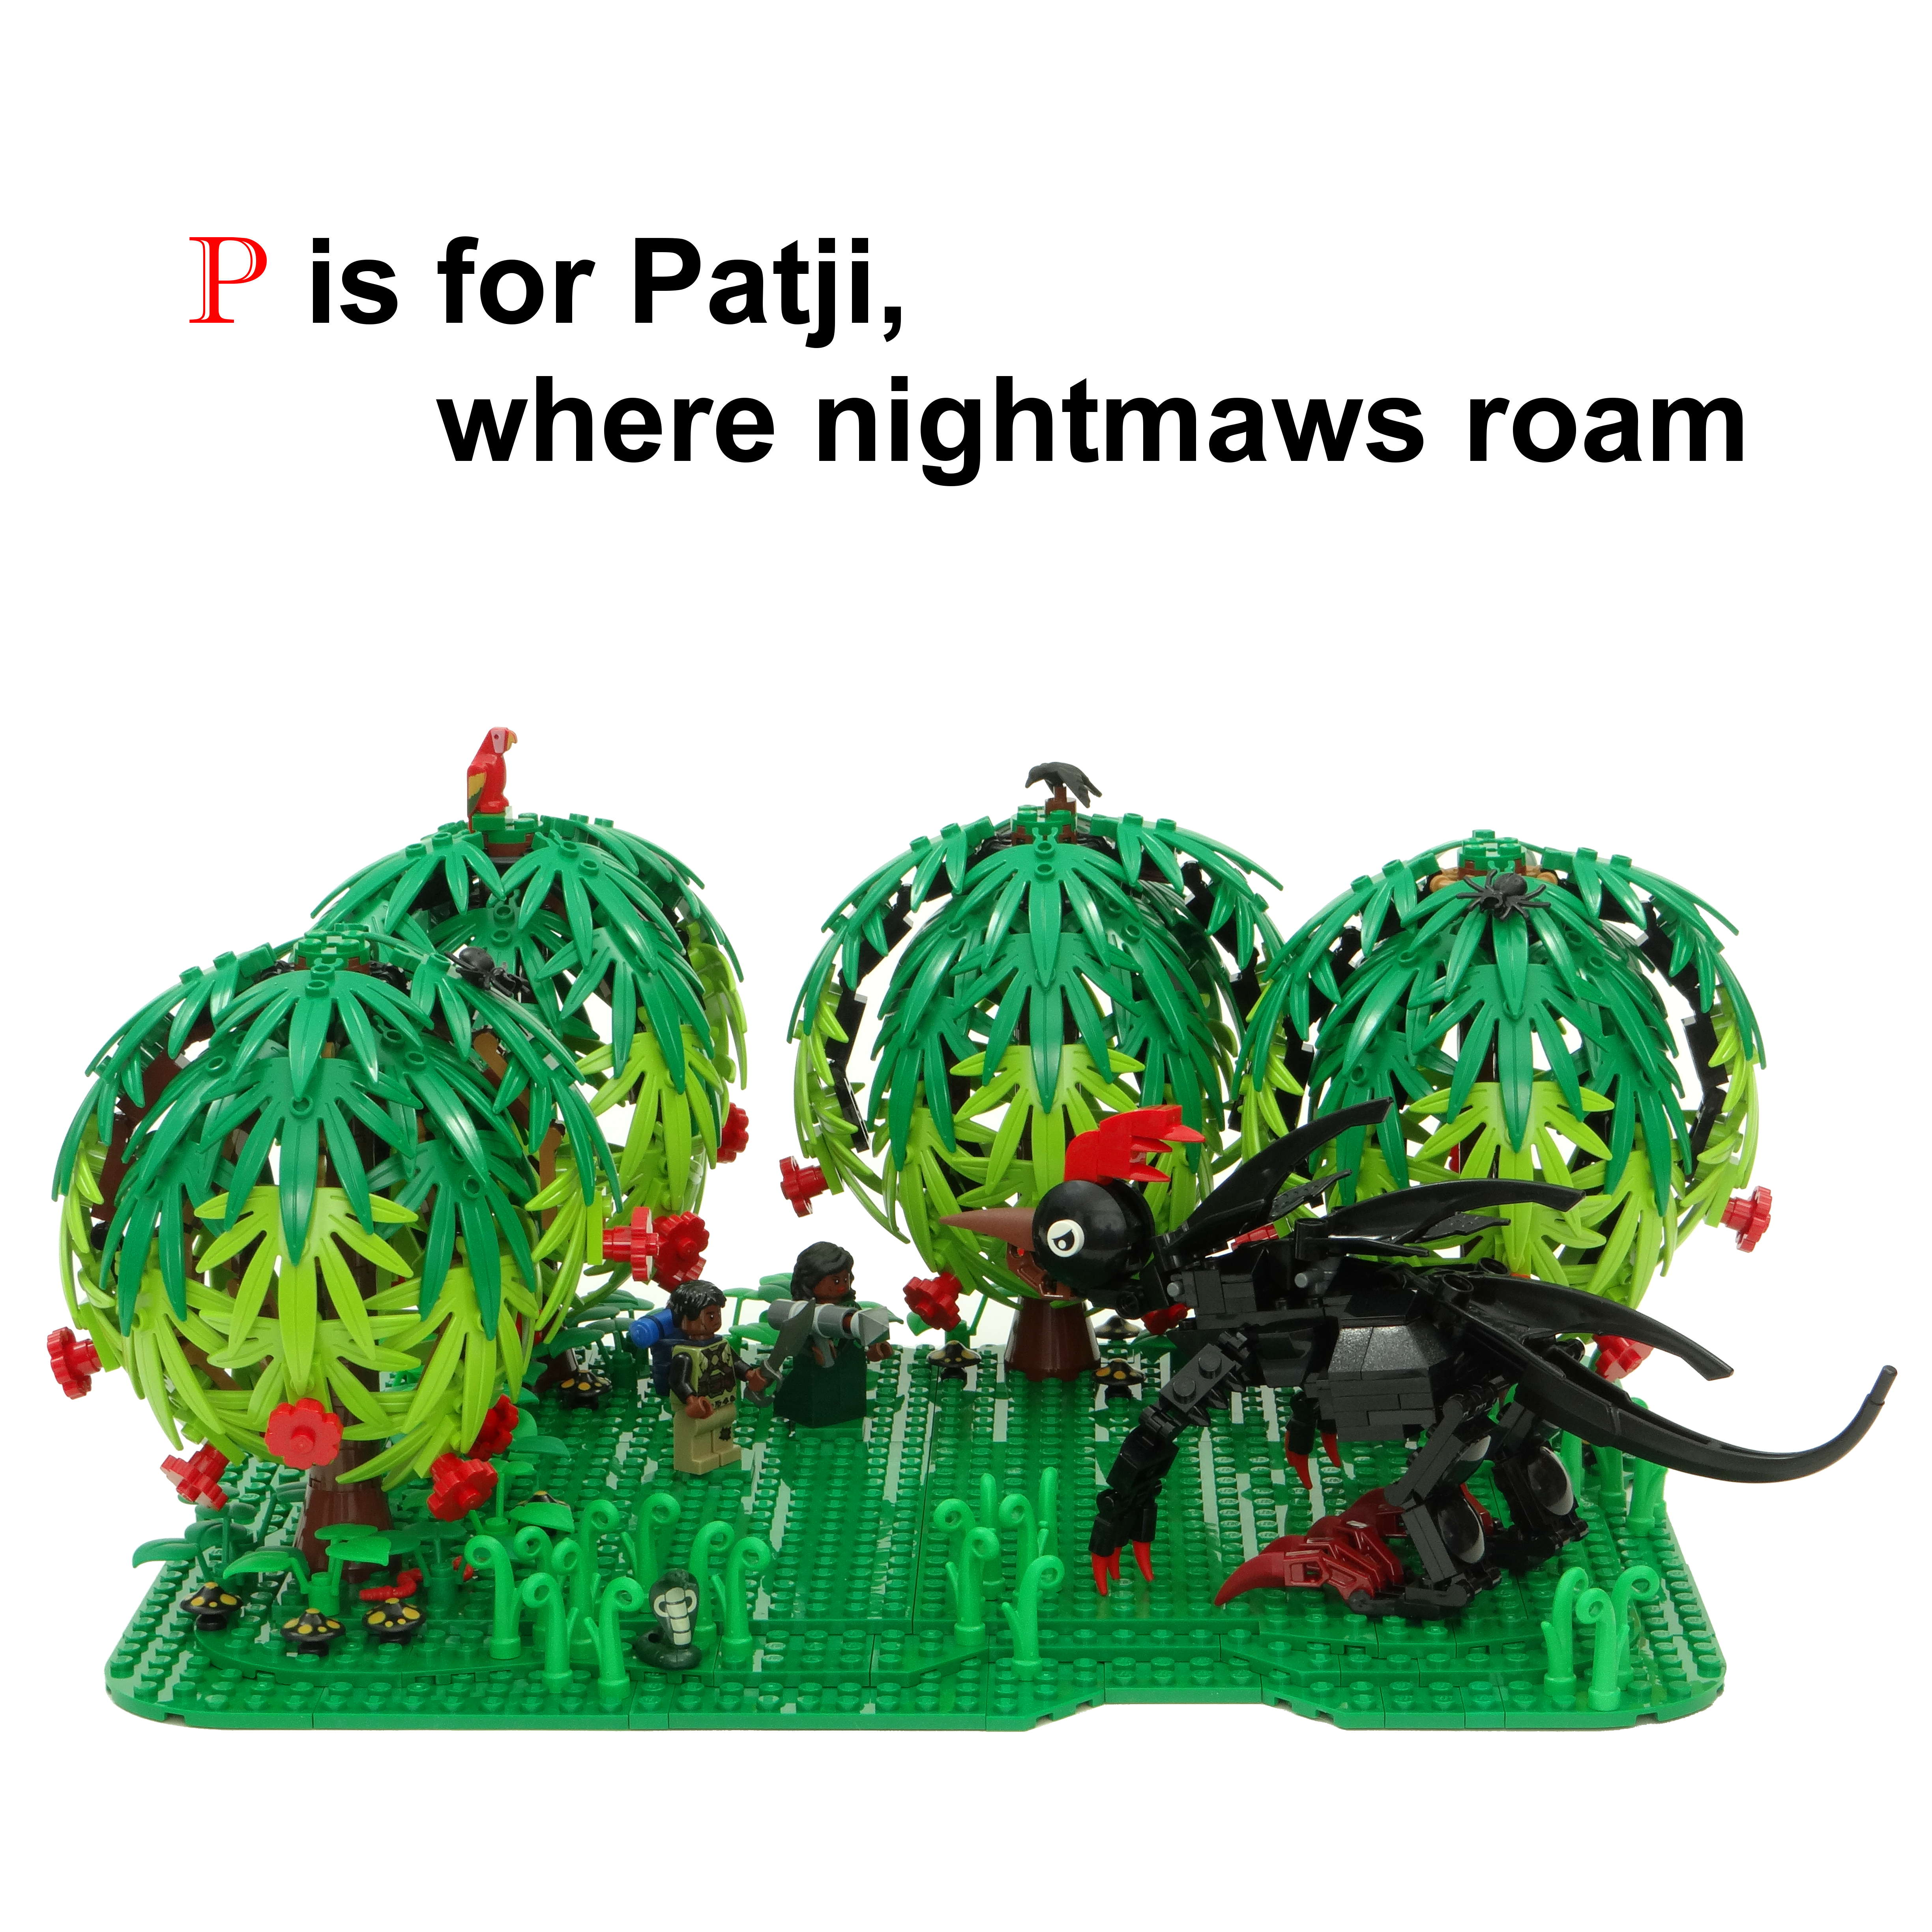 P-is-for-Patji